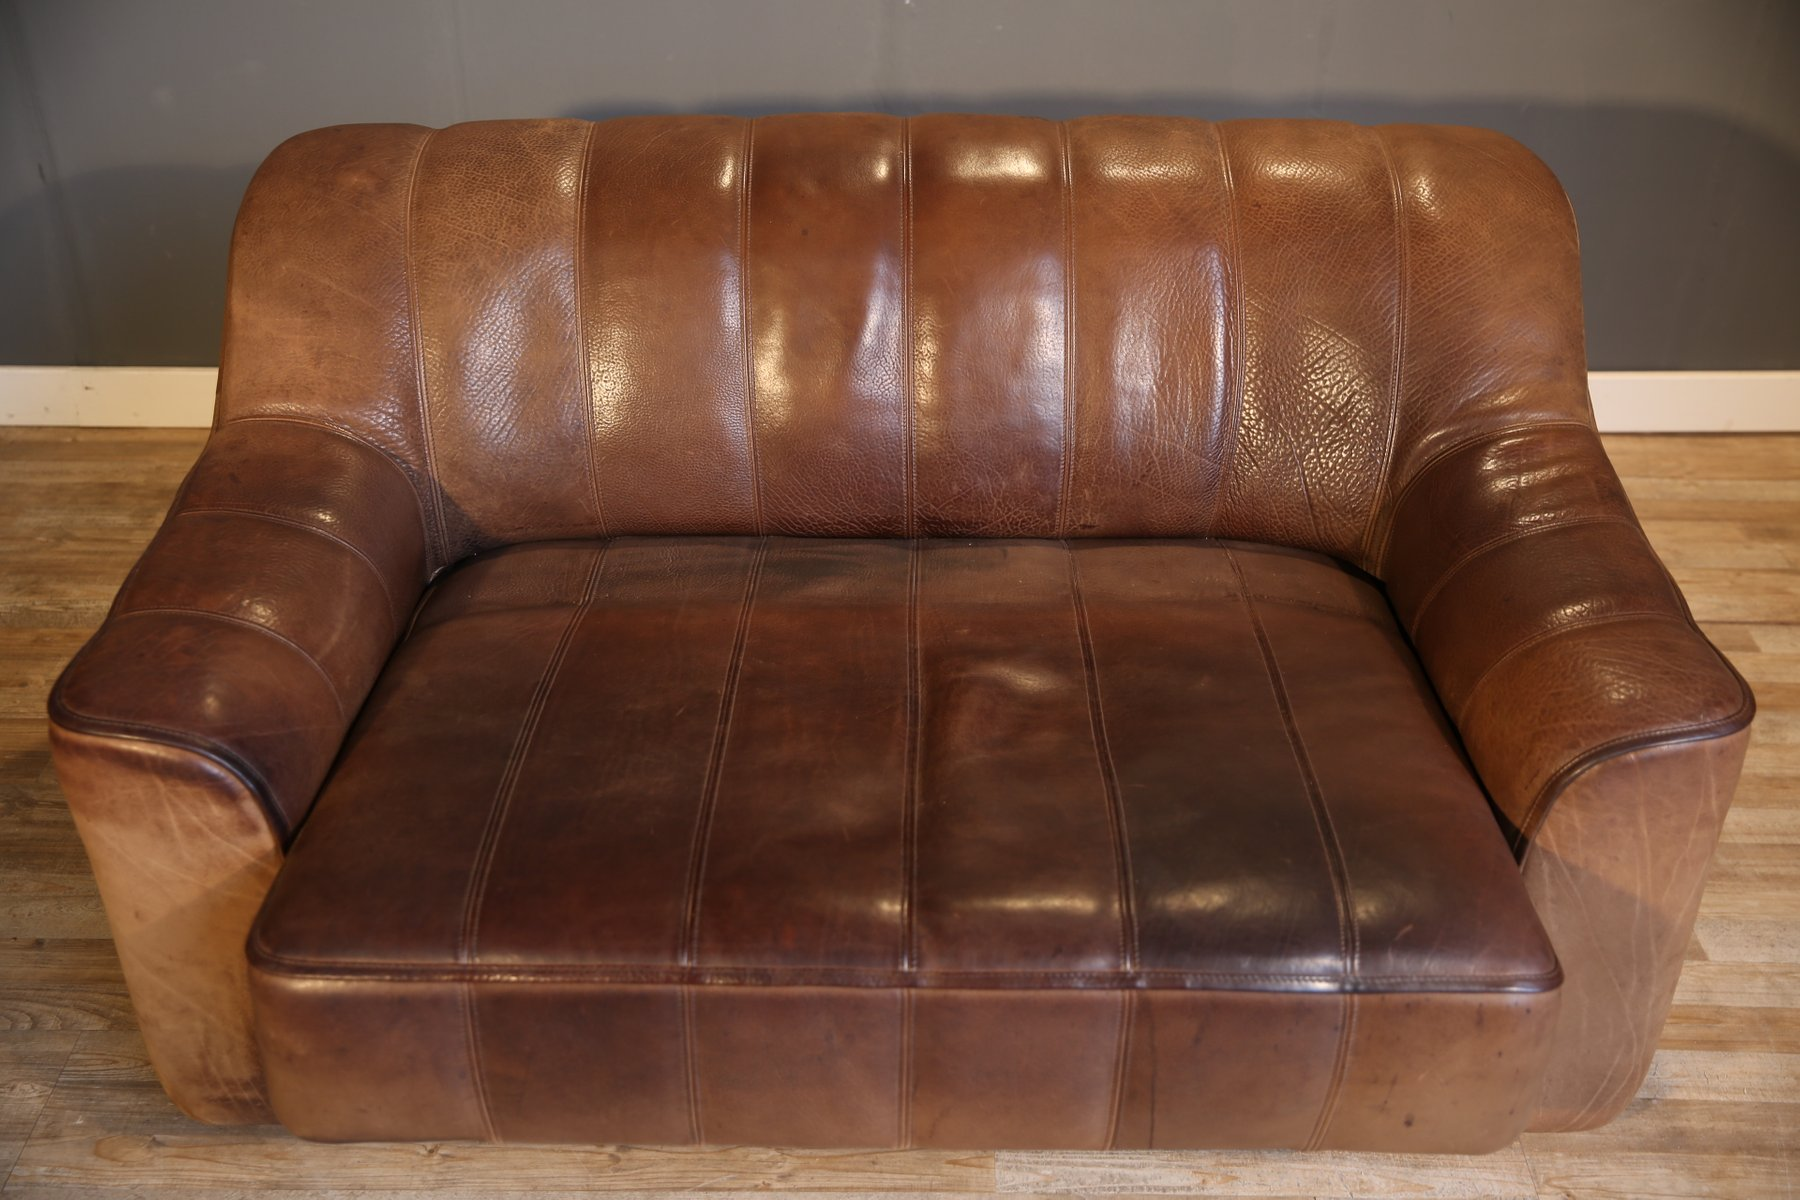 flexsteel leather sofa color repair bed that converts to bunk beds ds 44 double seat from de sede 1970s for